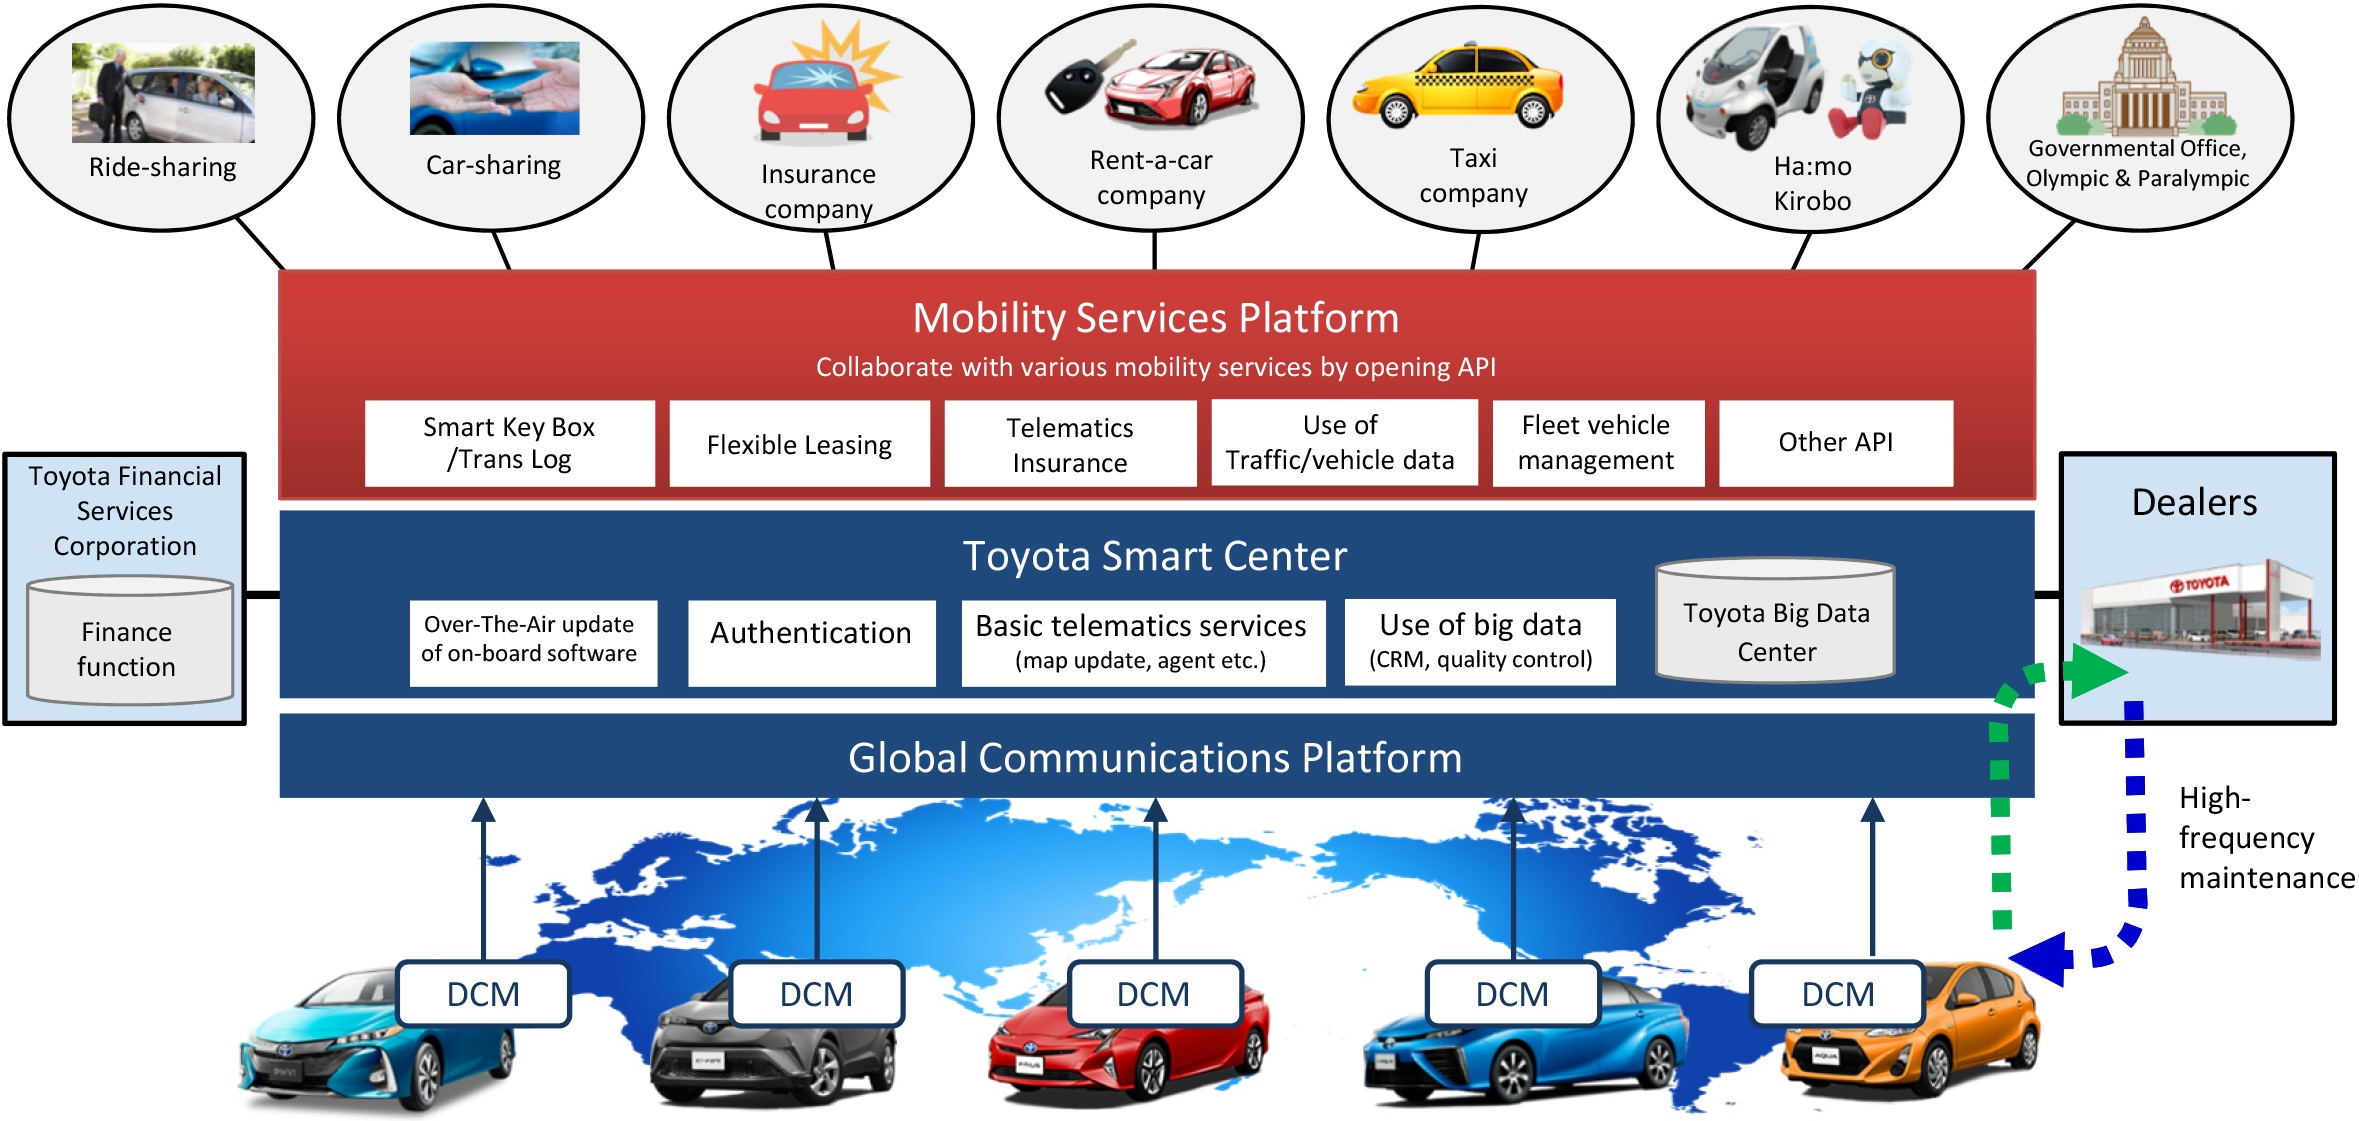 Toyota Connected to bring advanced mobility services to